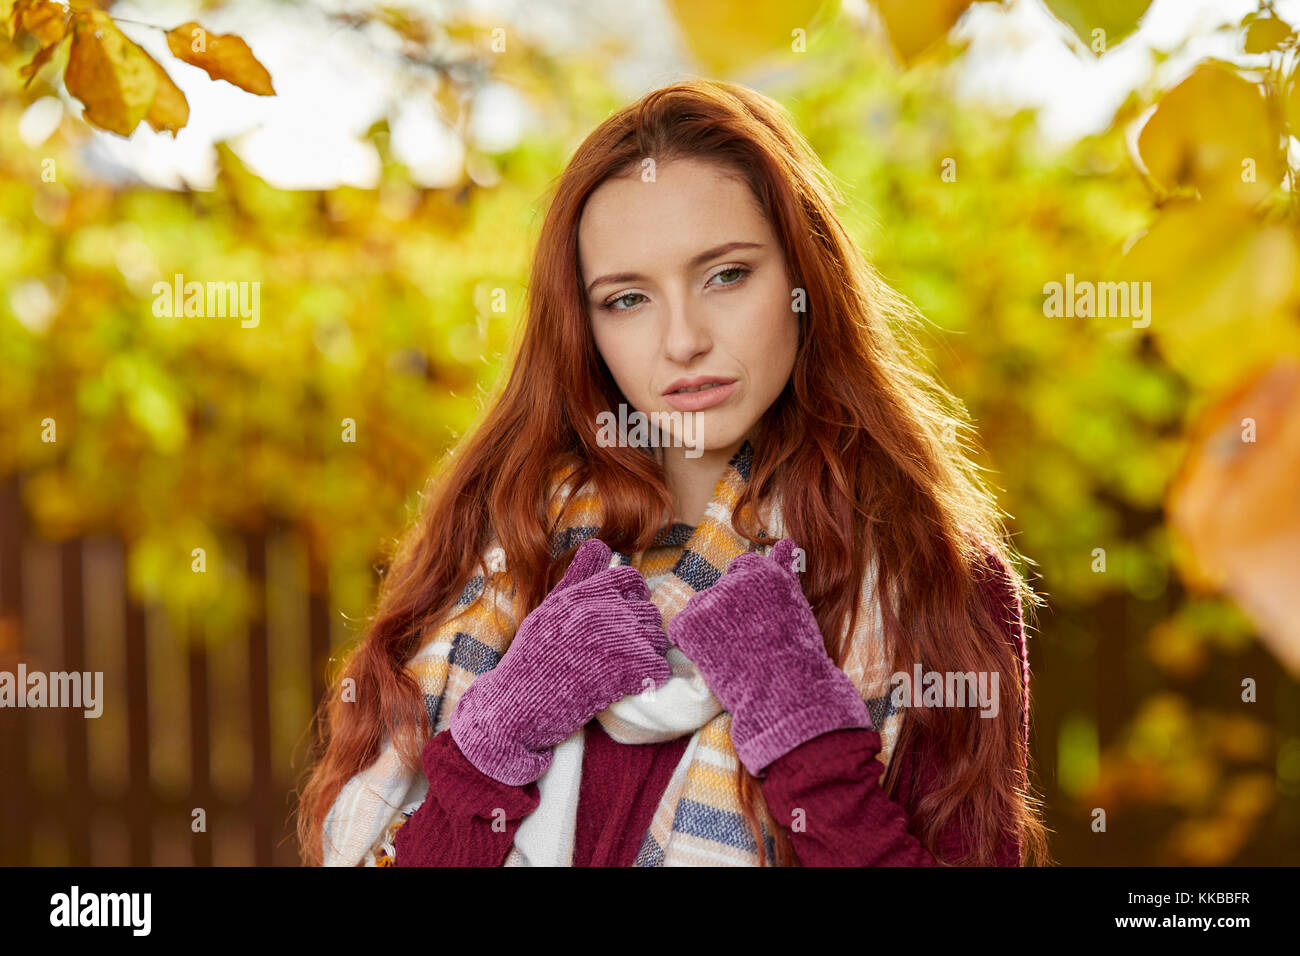 Girl looking concerned outdoors - Stock Image